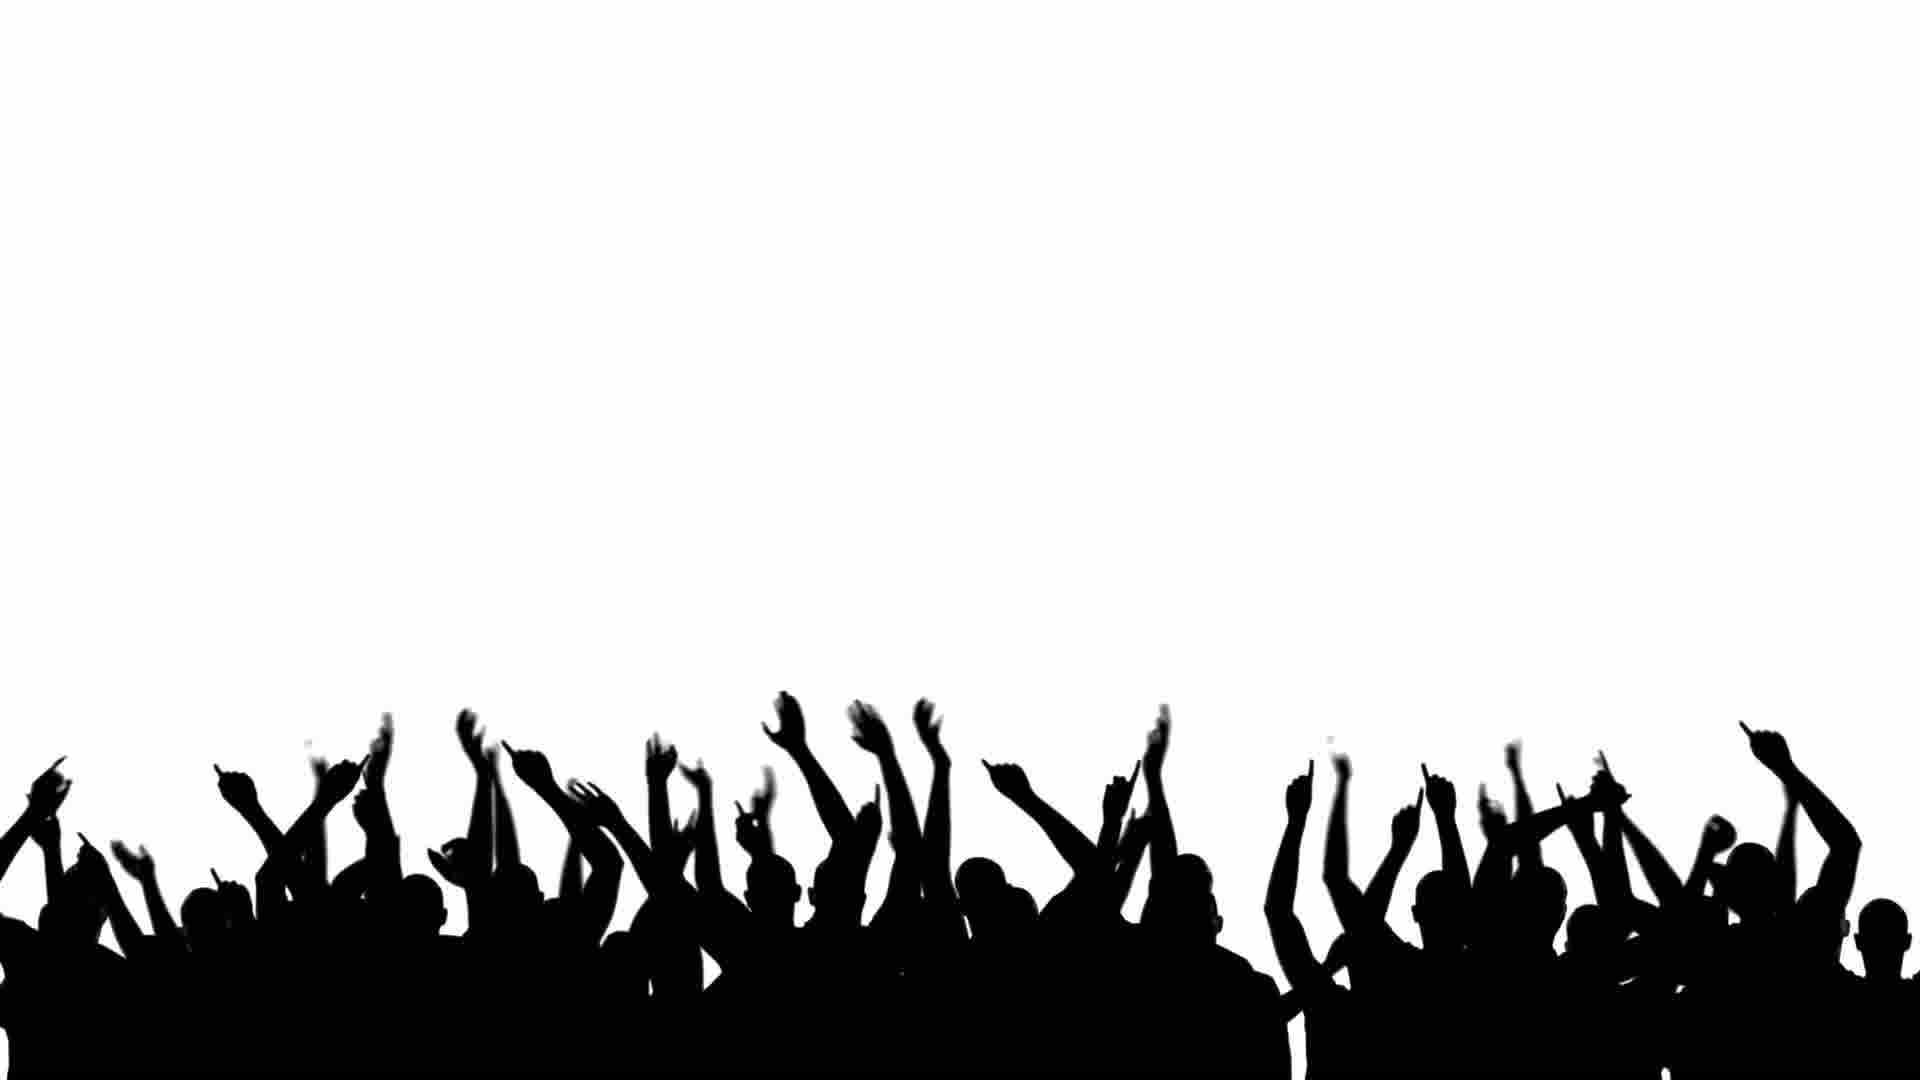 party silhouette party crowd silhouette stock footage youtube silhouette party